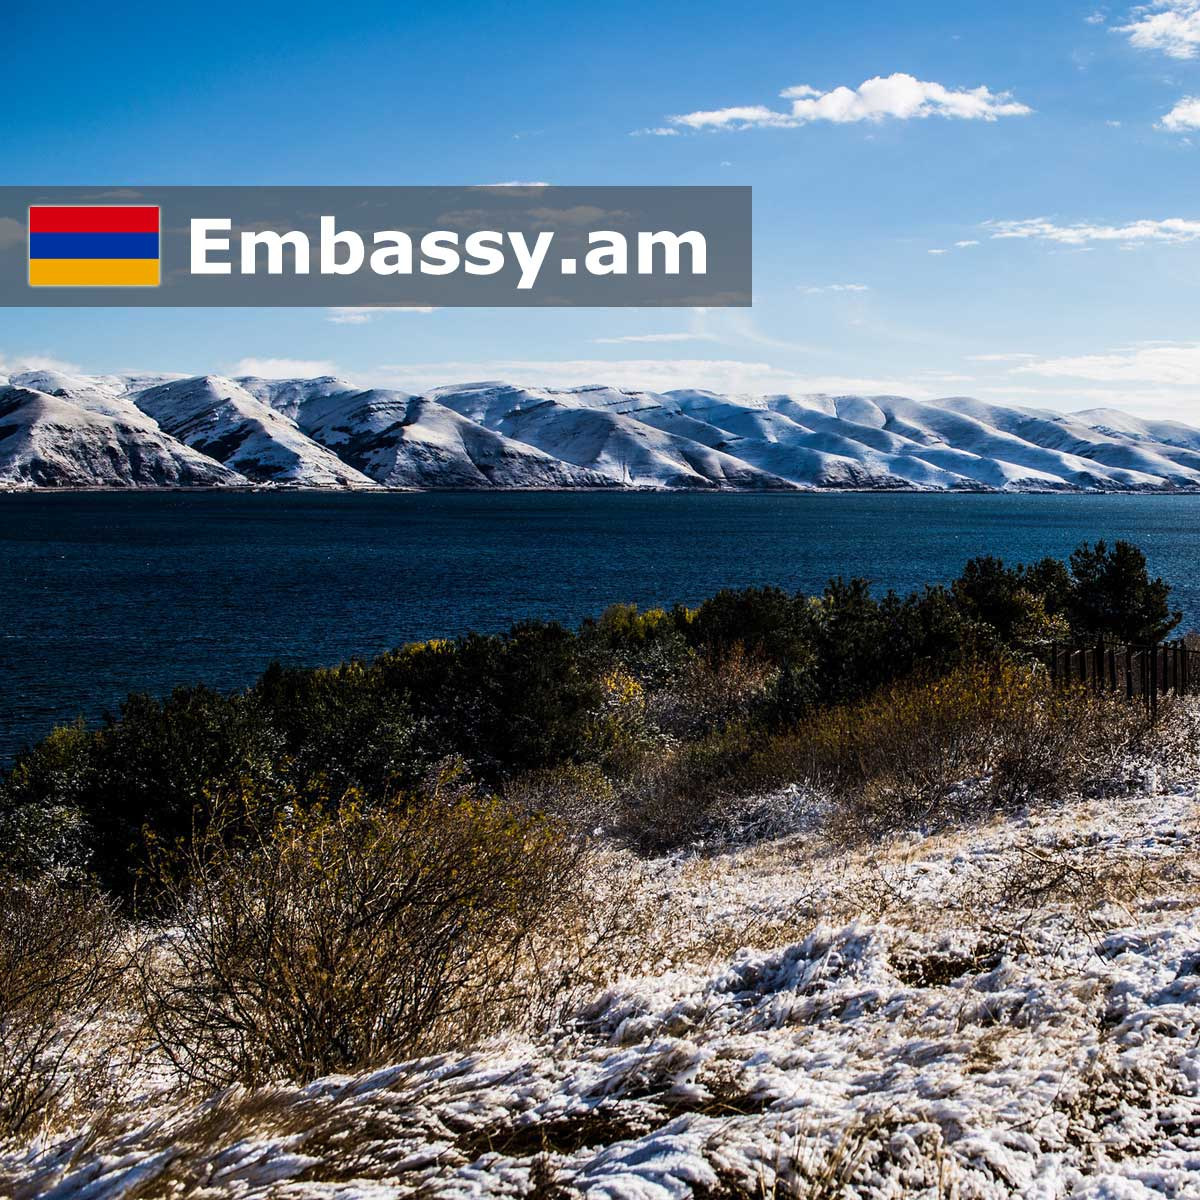 Sevan - Hotels in Armenia - Embassy.am